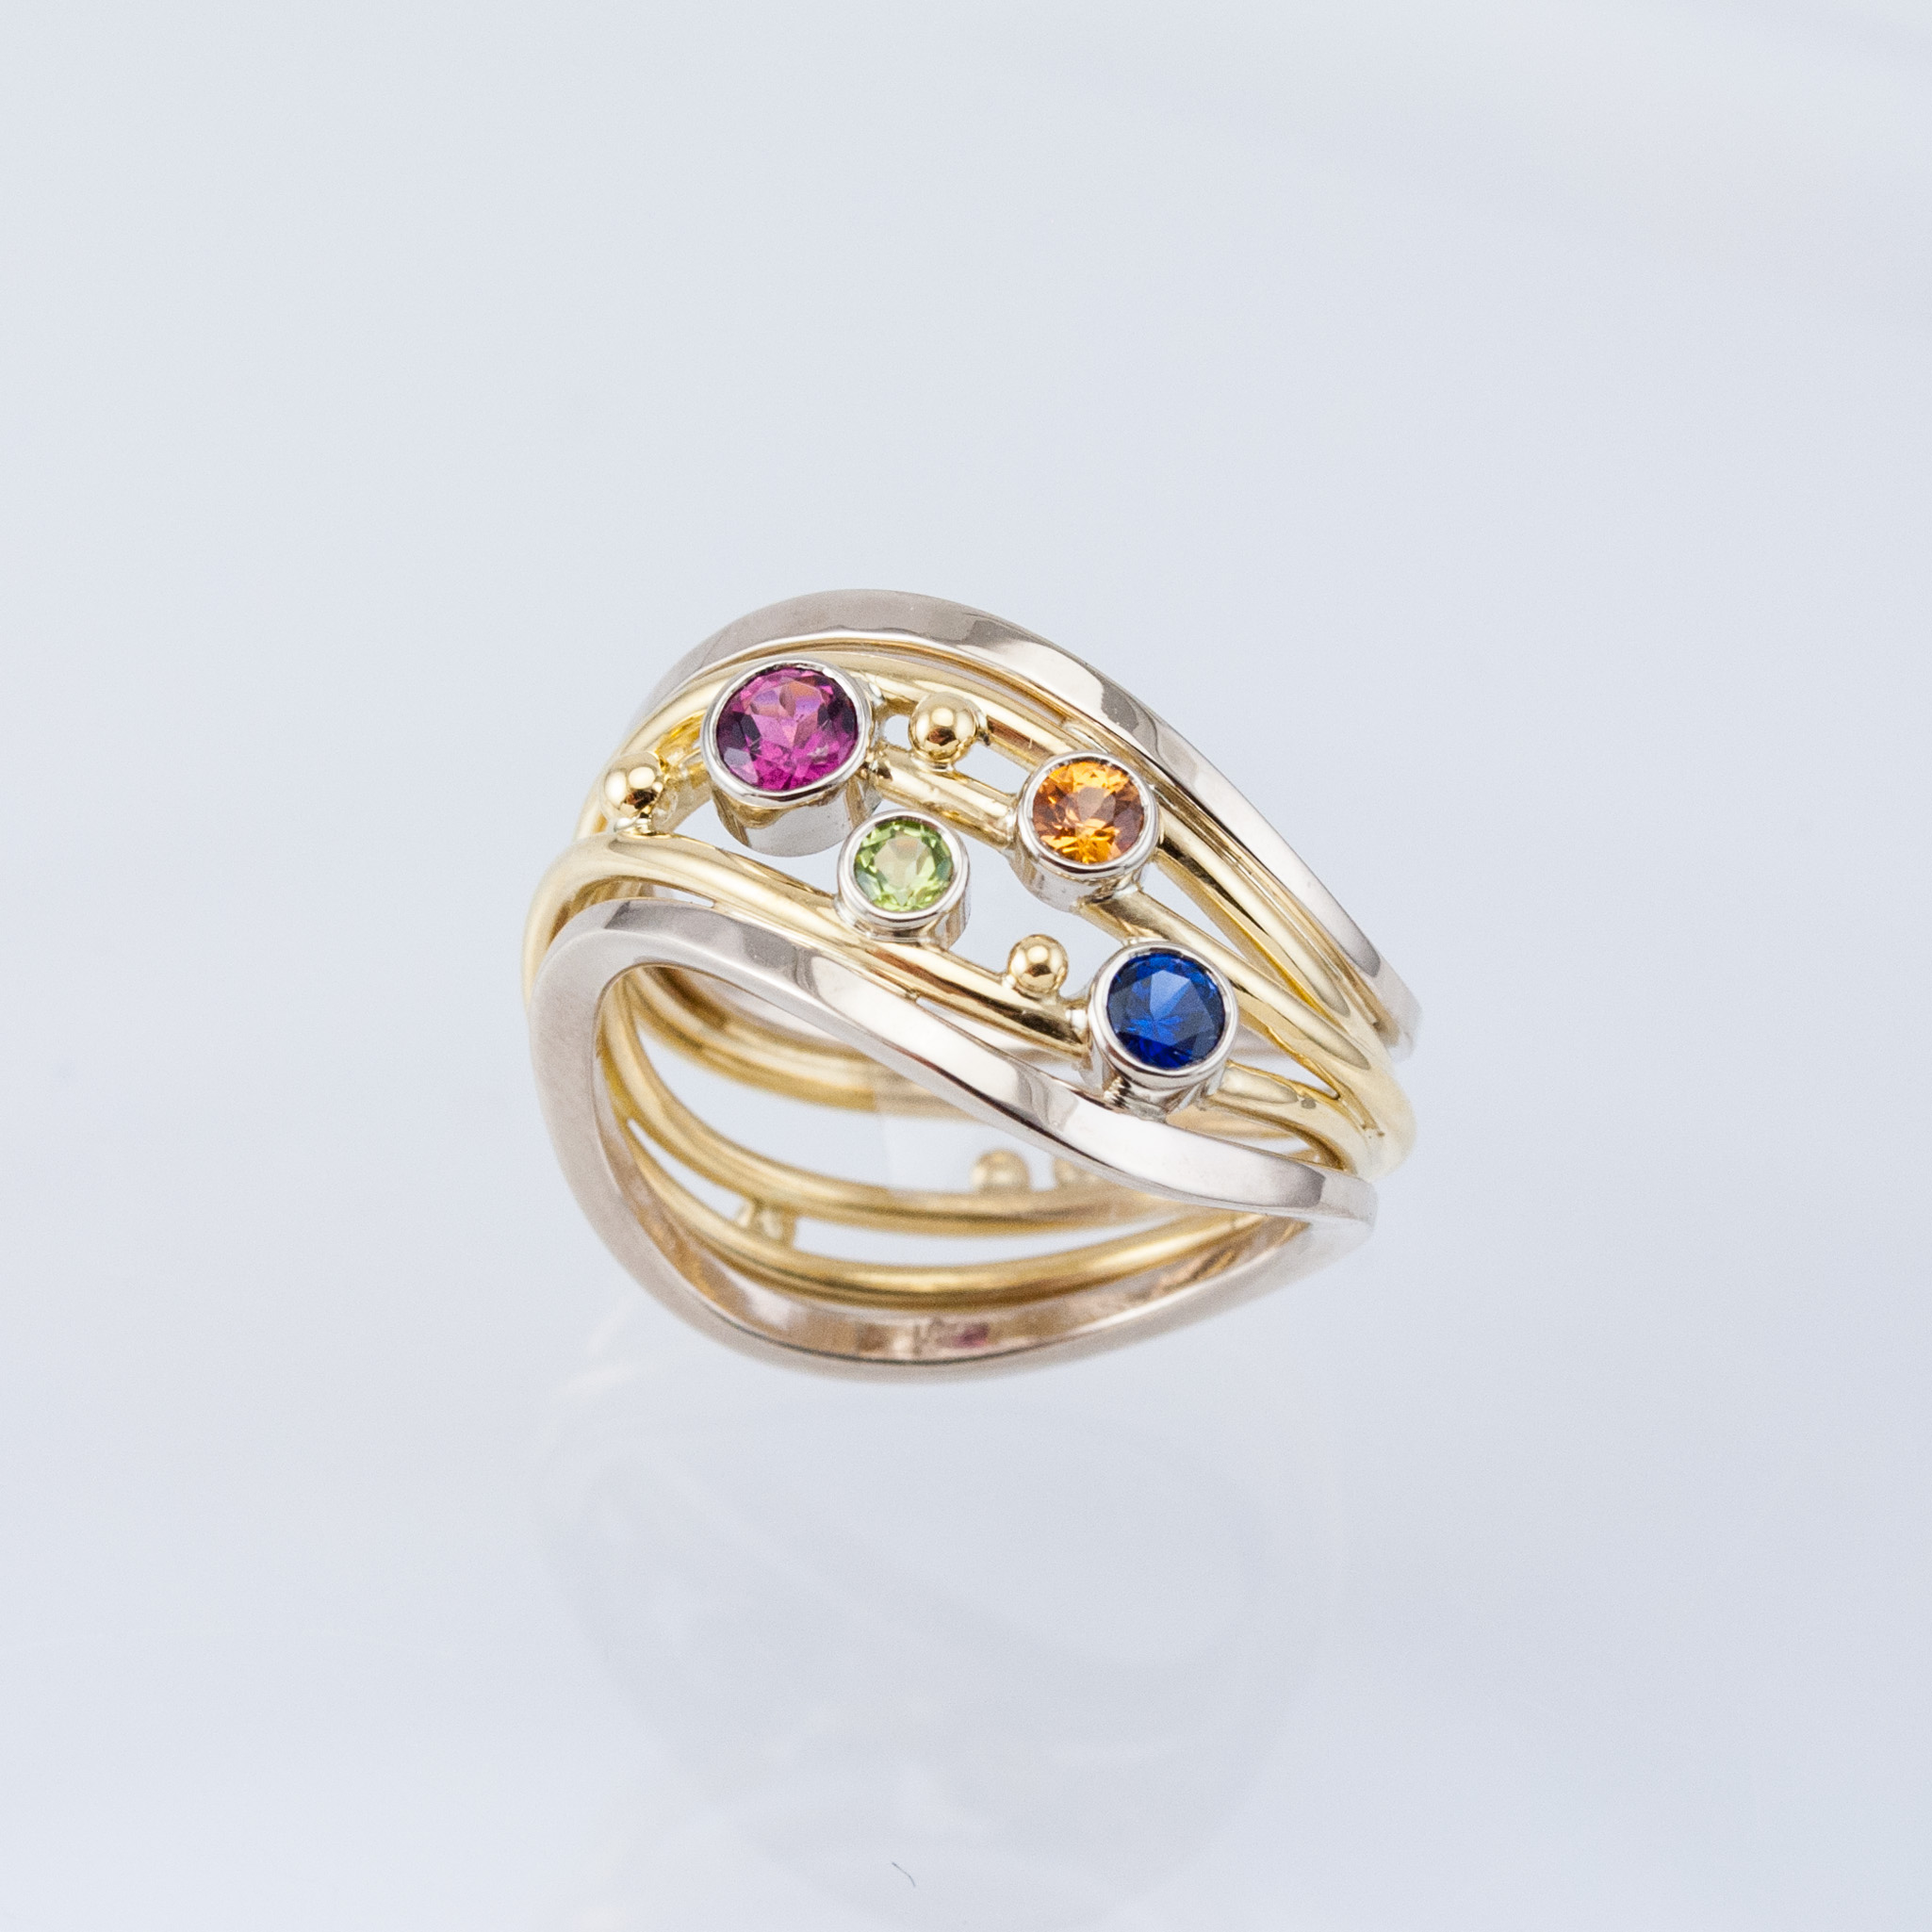 Tideline Ring with Birthstones